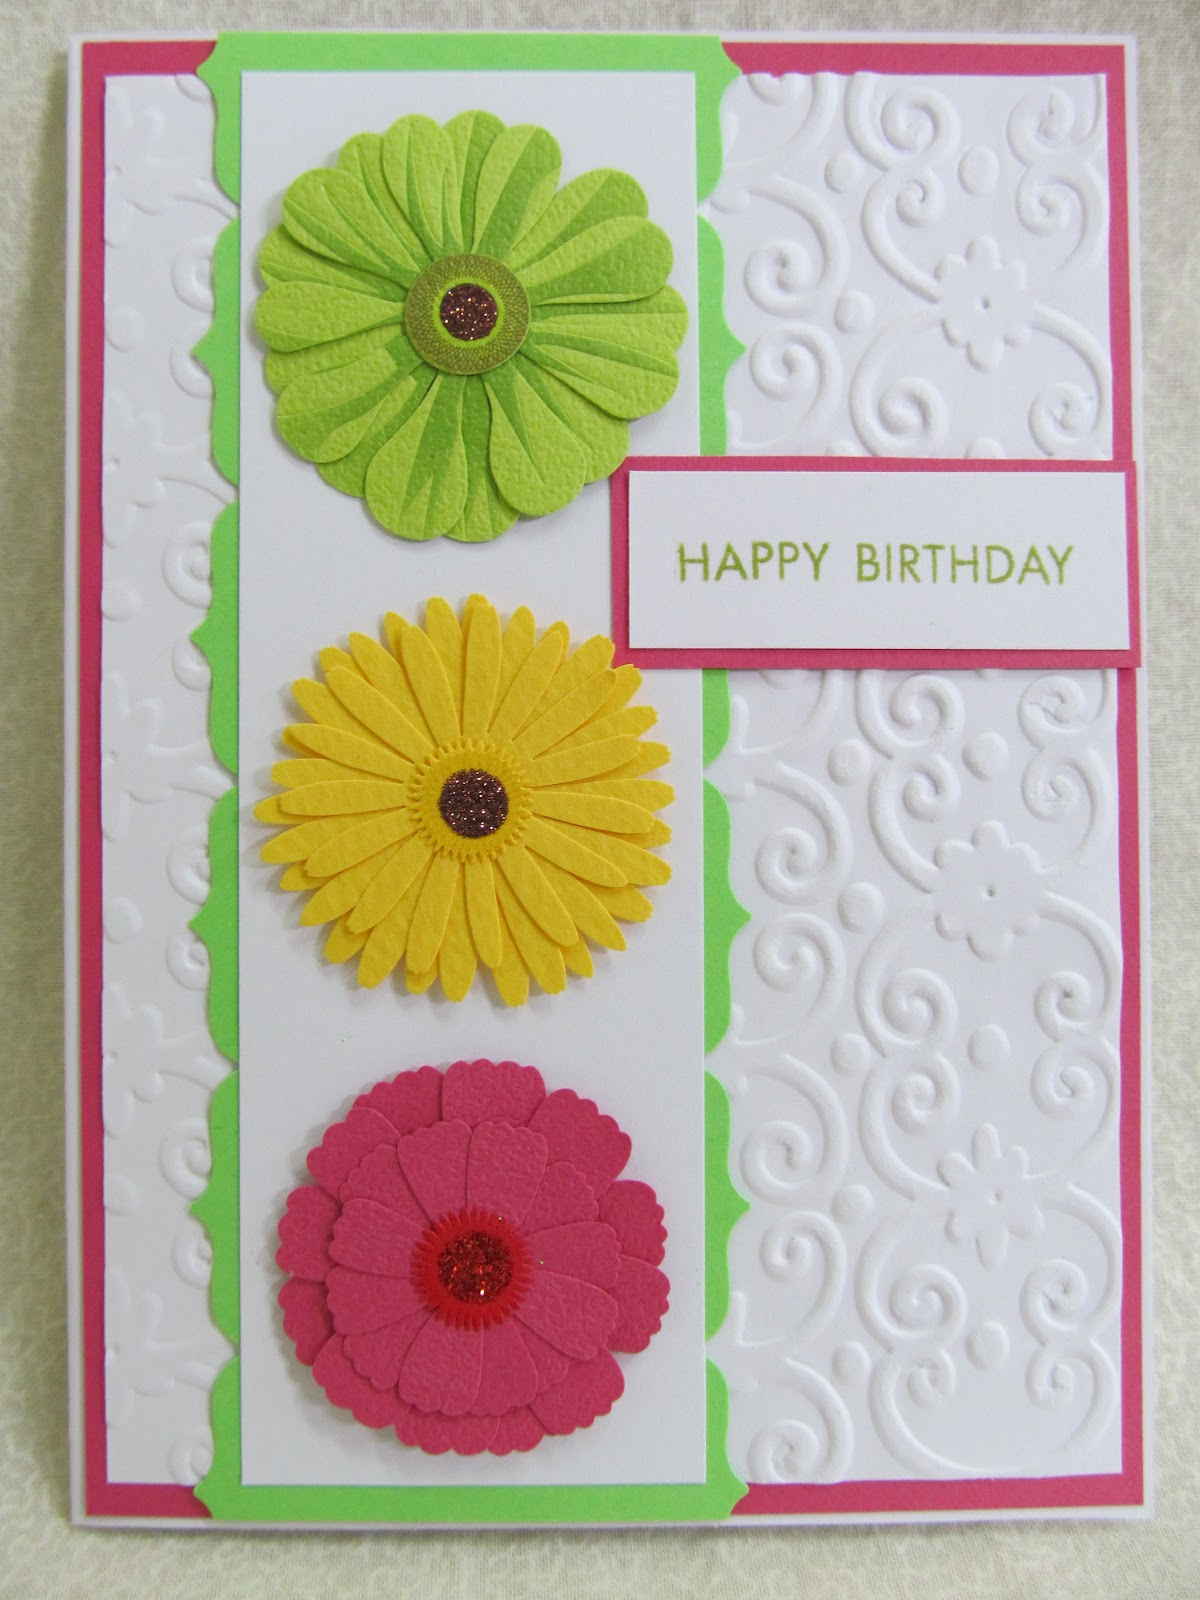 images of handmade cards - photo #40